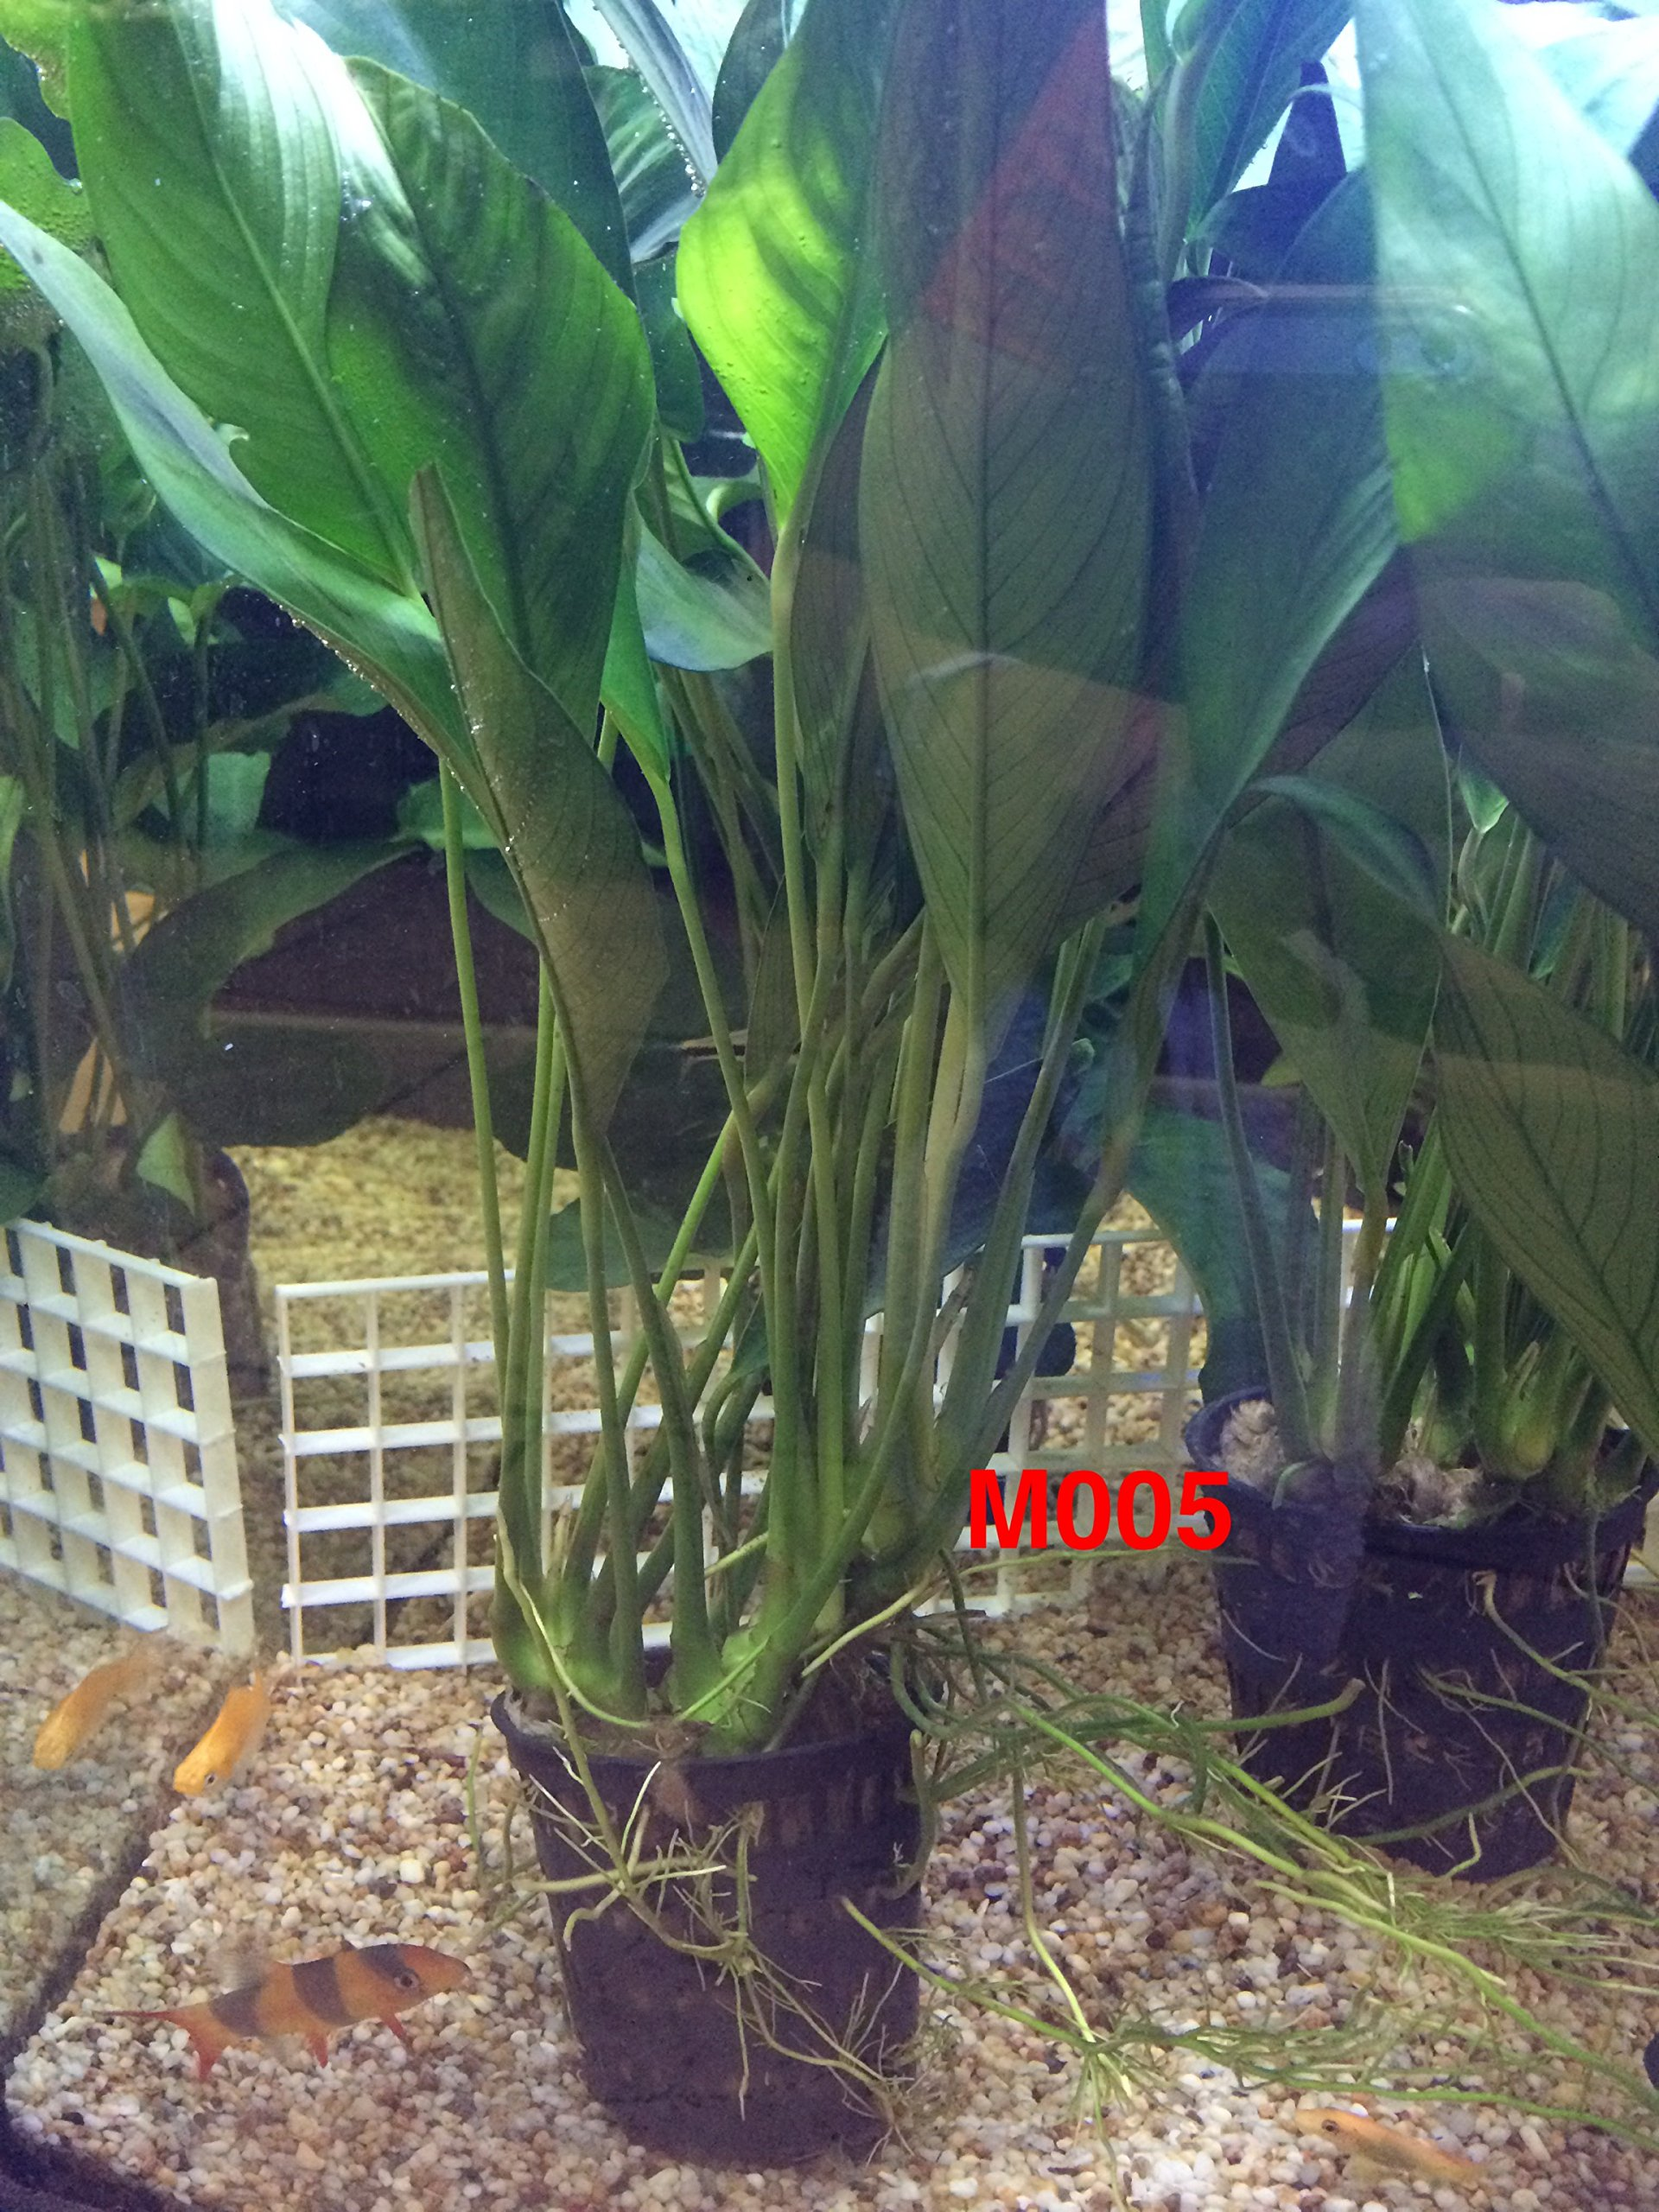 Anubias congensis Mother Pot Plant M005 Live Aquatic Plant by Jayco (Image #5)